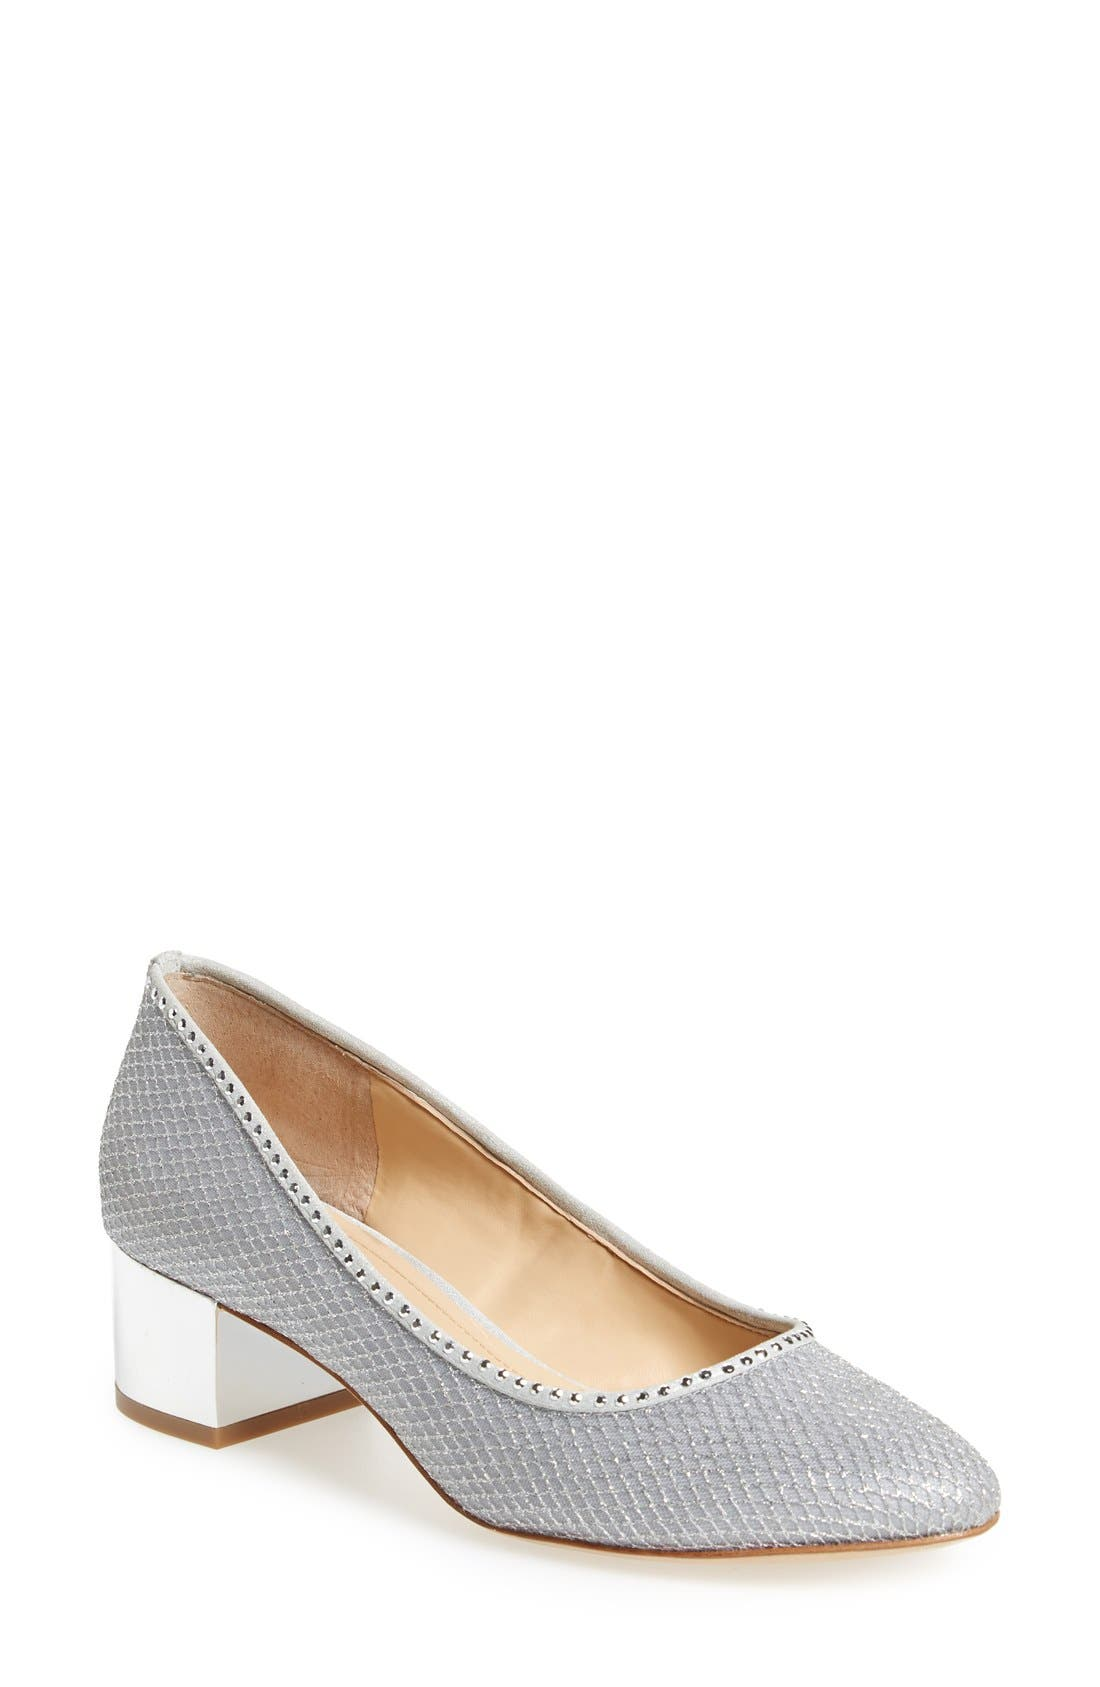 IMAGINE BY VINCE CAMUTO 'Hetty' Block Heel Pump